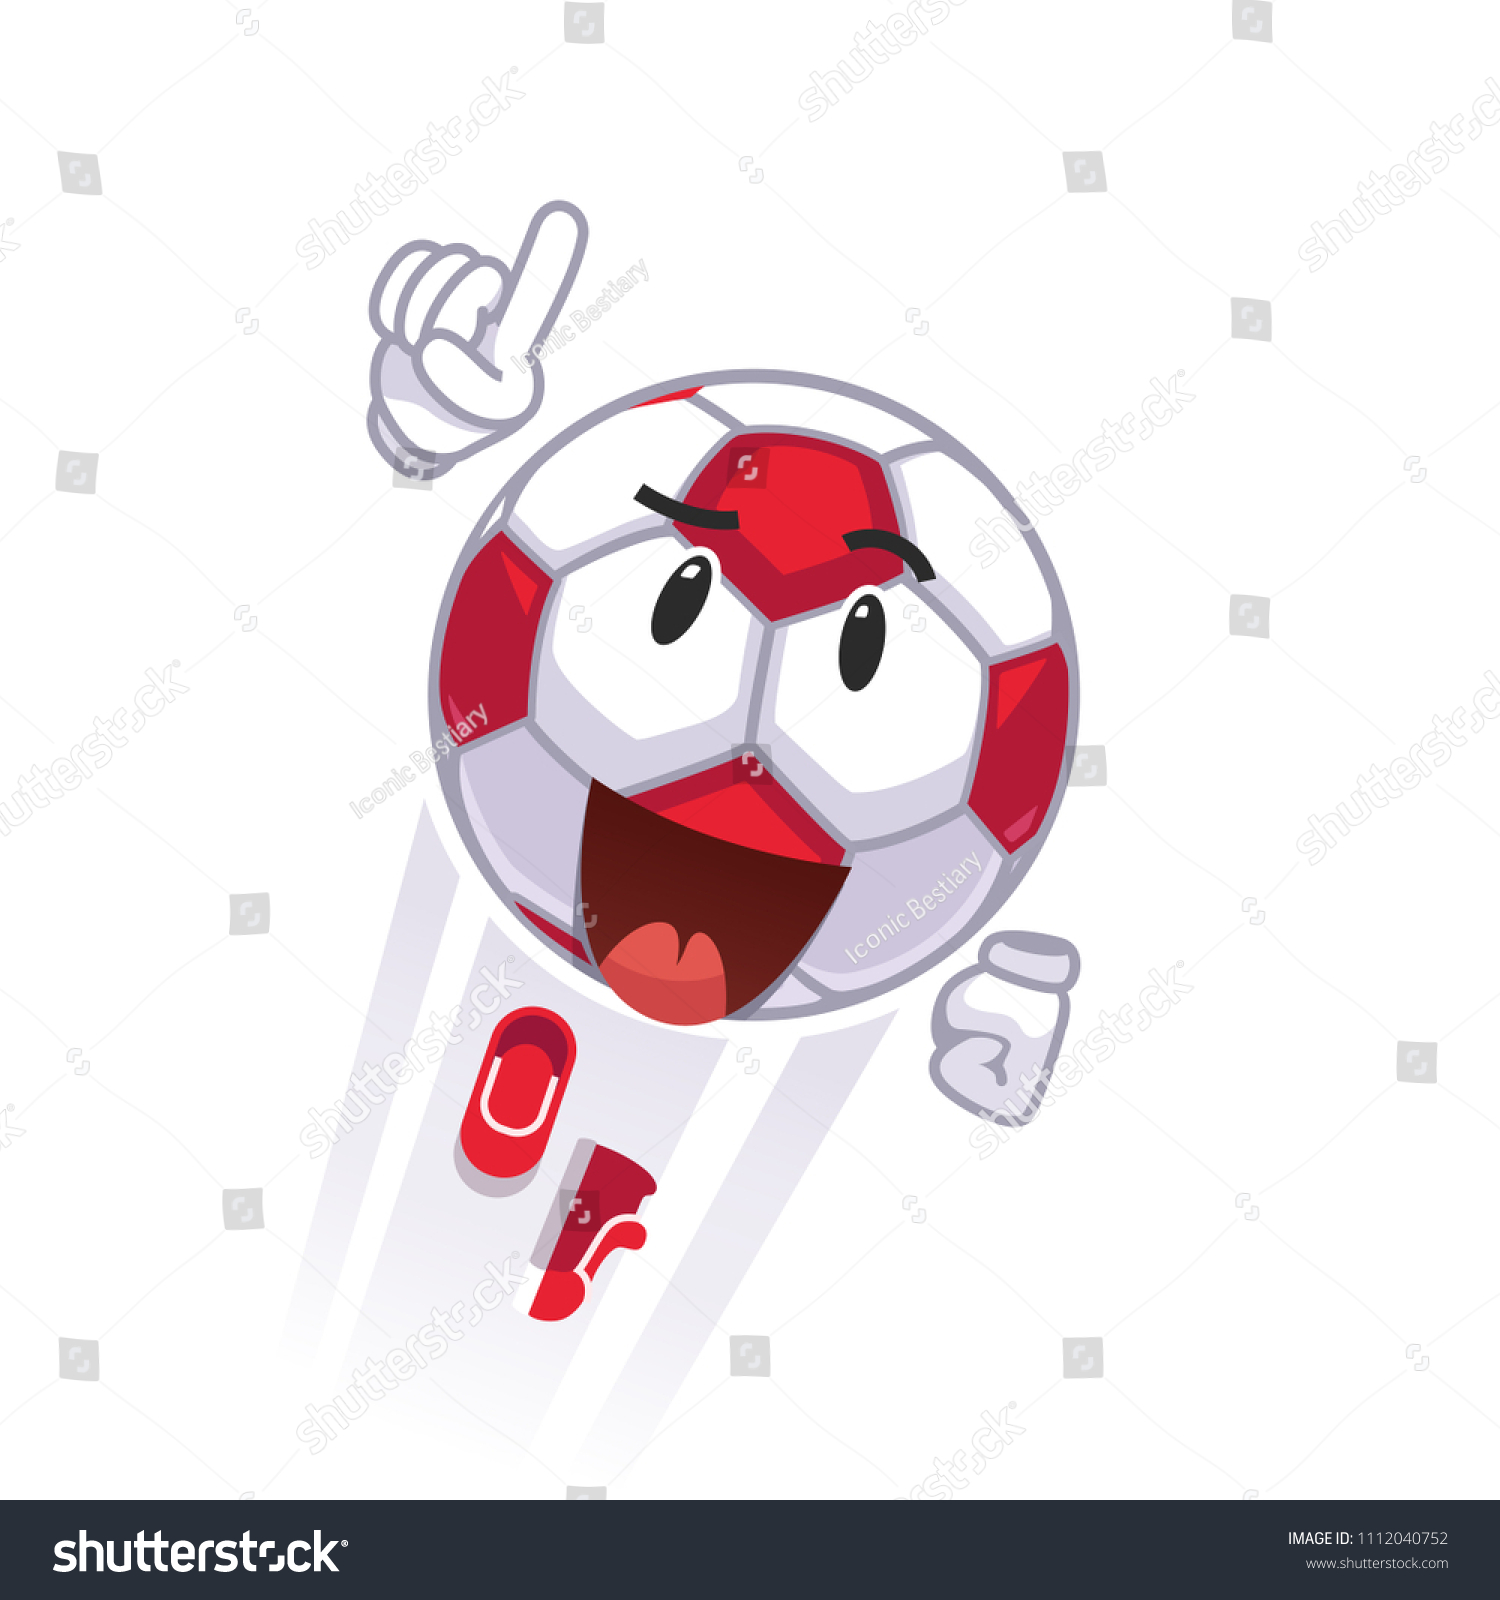 hight resolution of courageous animated soccer football character flying superhero metaphor cartoon soccer ball emoticon colorful clipart flat style vector illustration